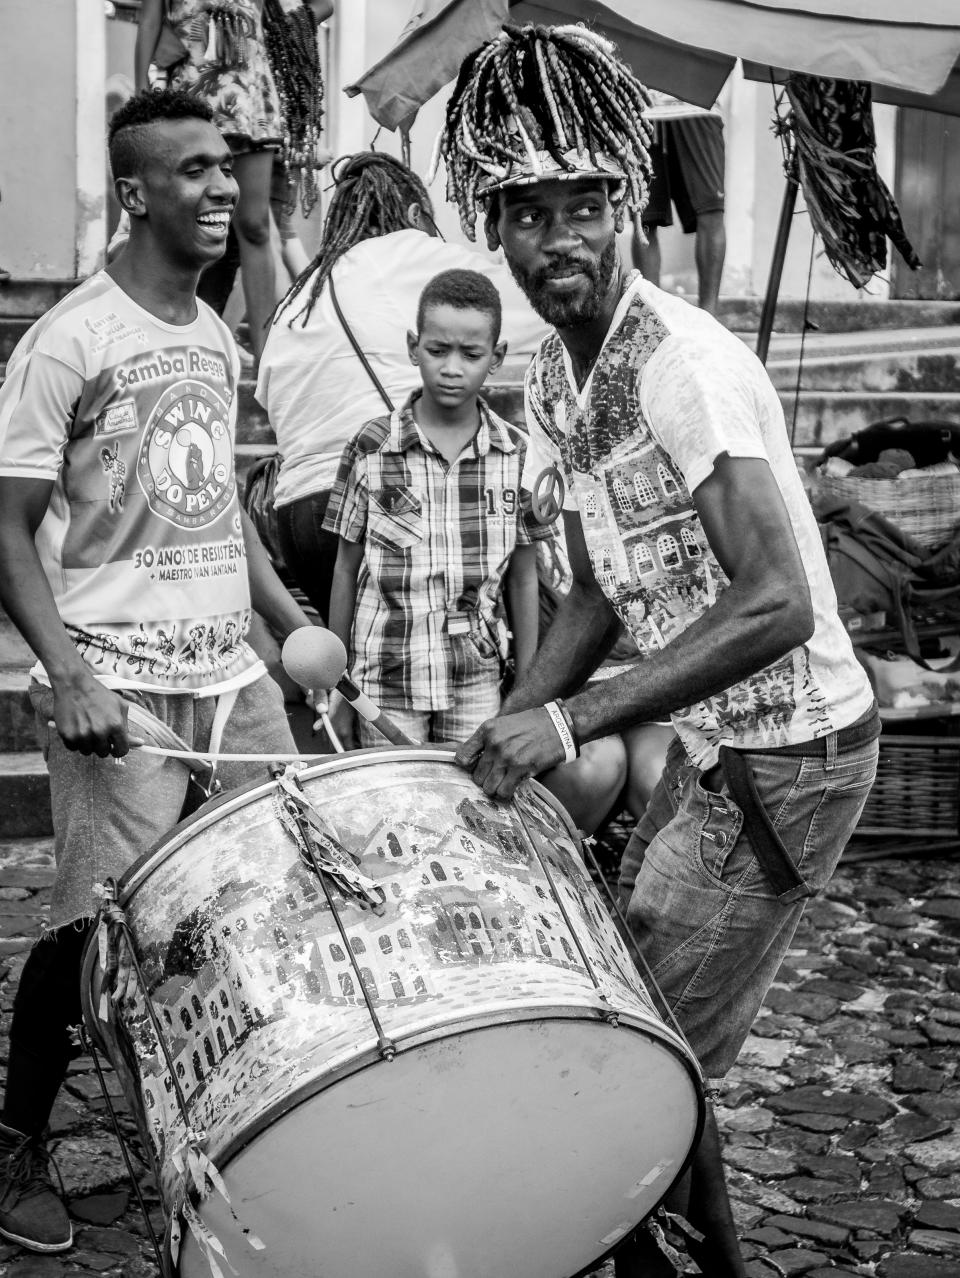 street, people, men, kid, child, boy, friends, smile, laugh, happy, drum, stick